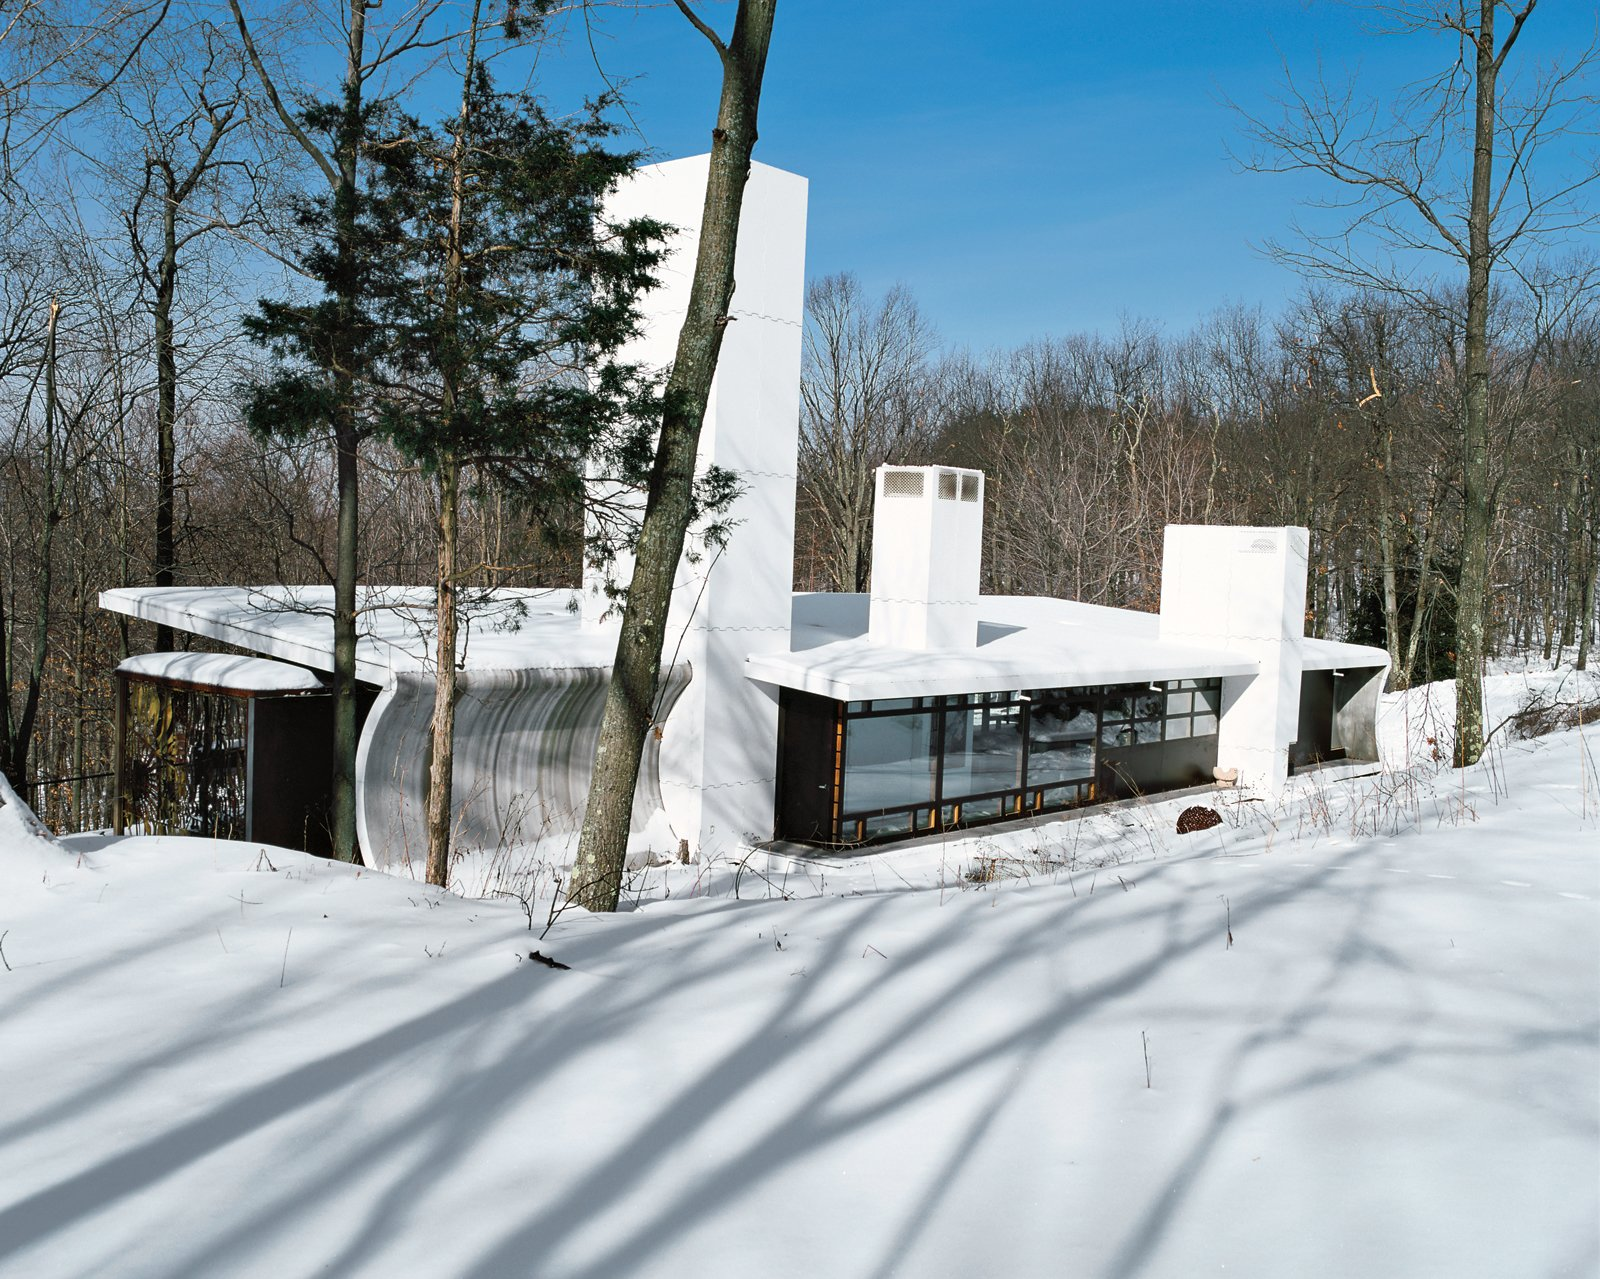 Photo 1 of 12 in A Hybrid Prefab Home in Upstate New York